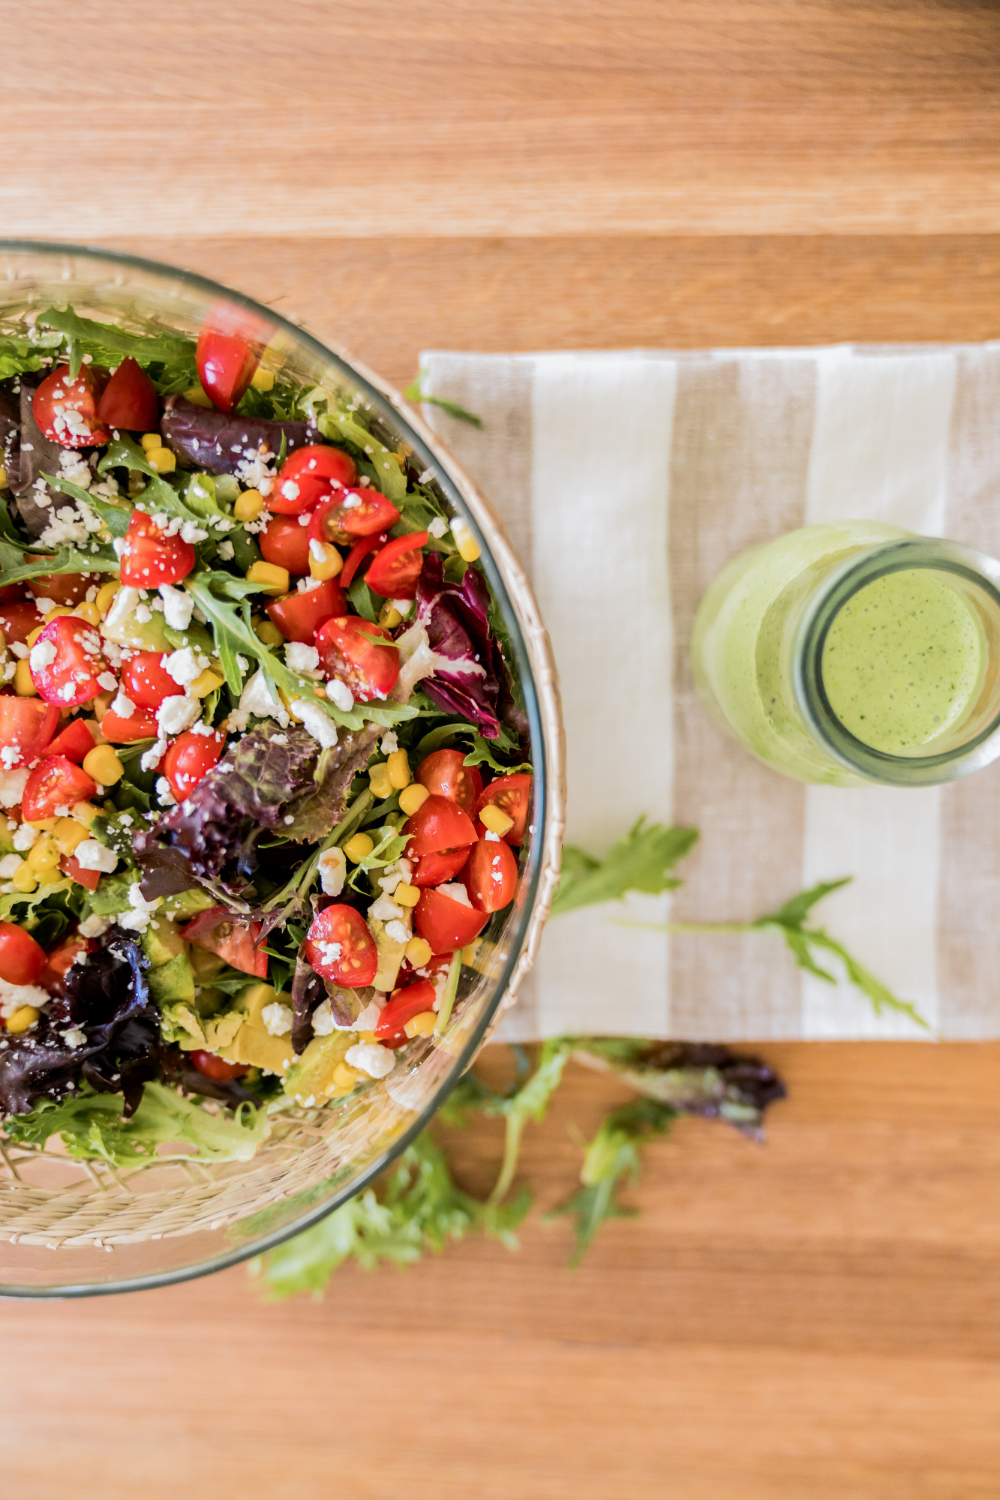 Summer Salad Dressing Summer Salads Salad Toppings Healthy Side Dishes [ 1500 x 1000 Pixel ]